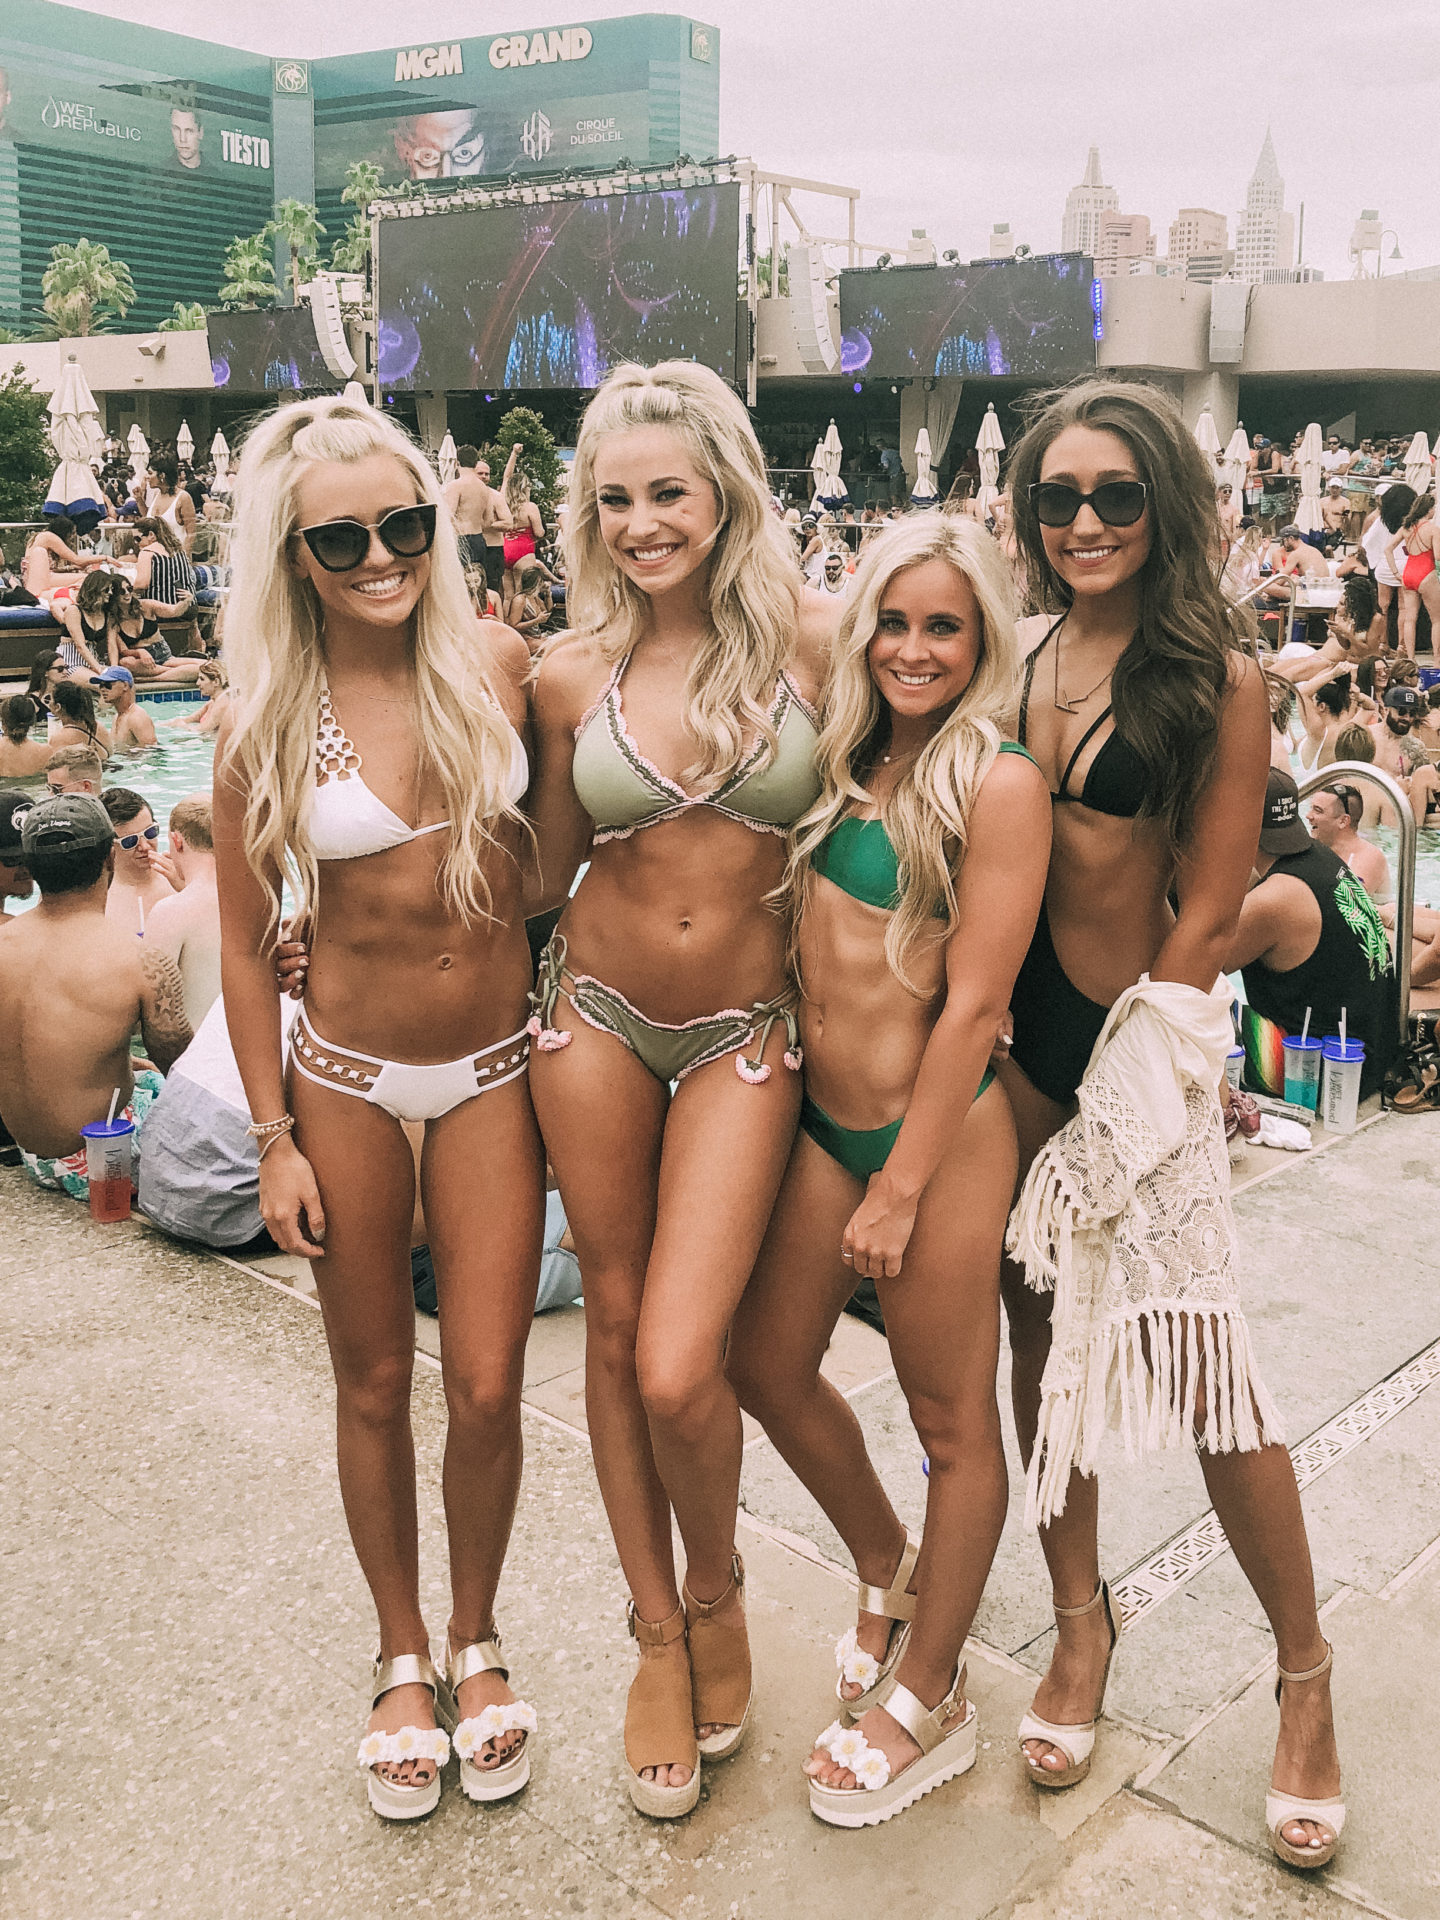 Swimsuit Models - Dallas Fashion Model, Fashion & Lifestyle Blogger - Peyton Mabry